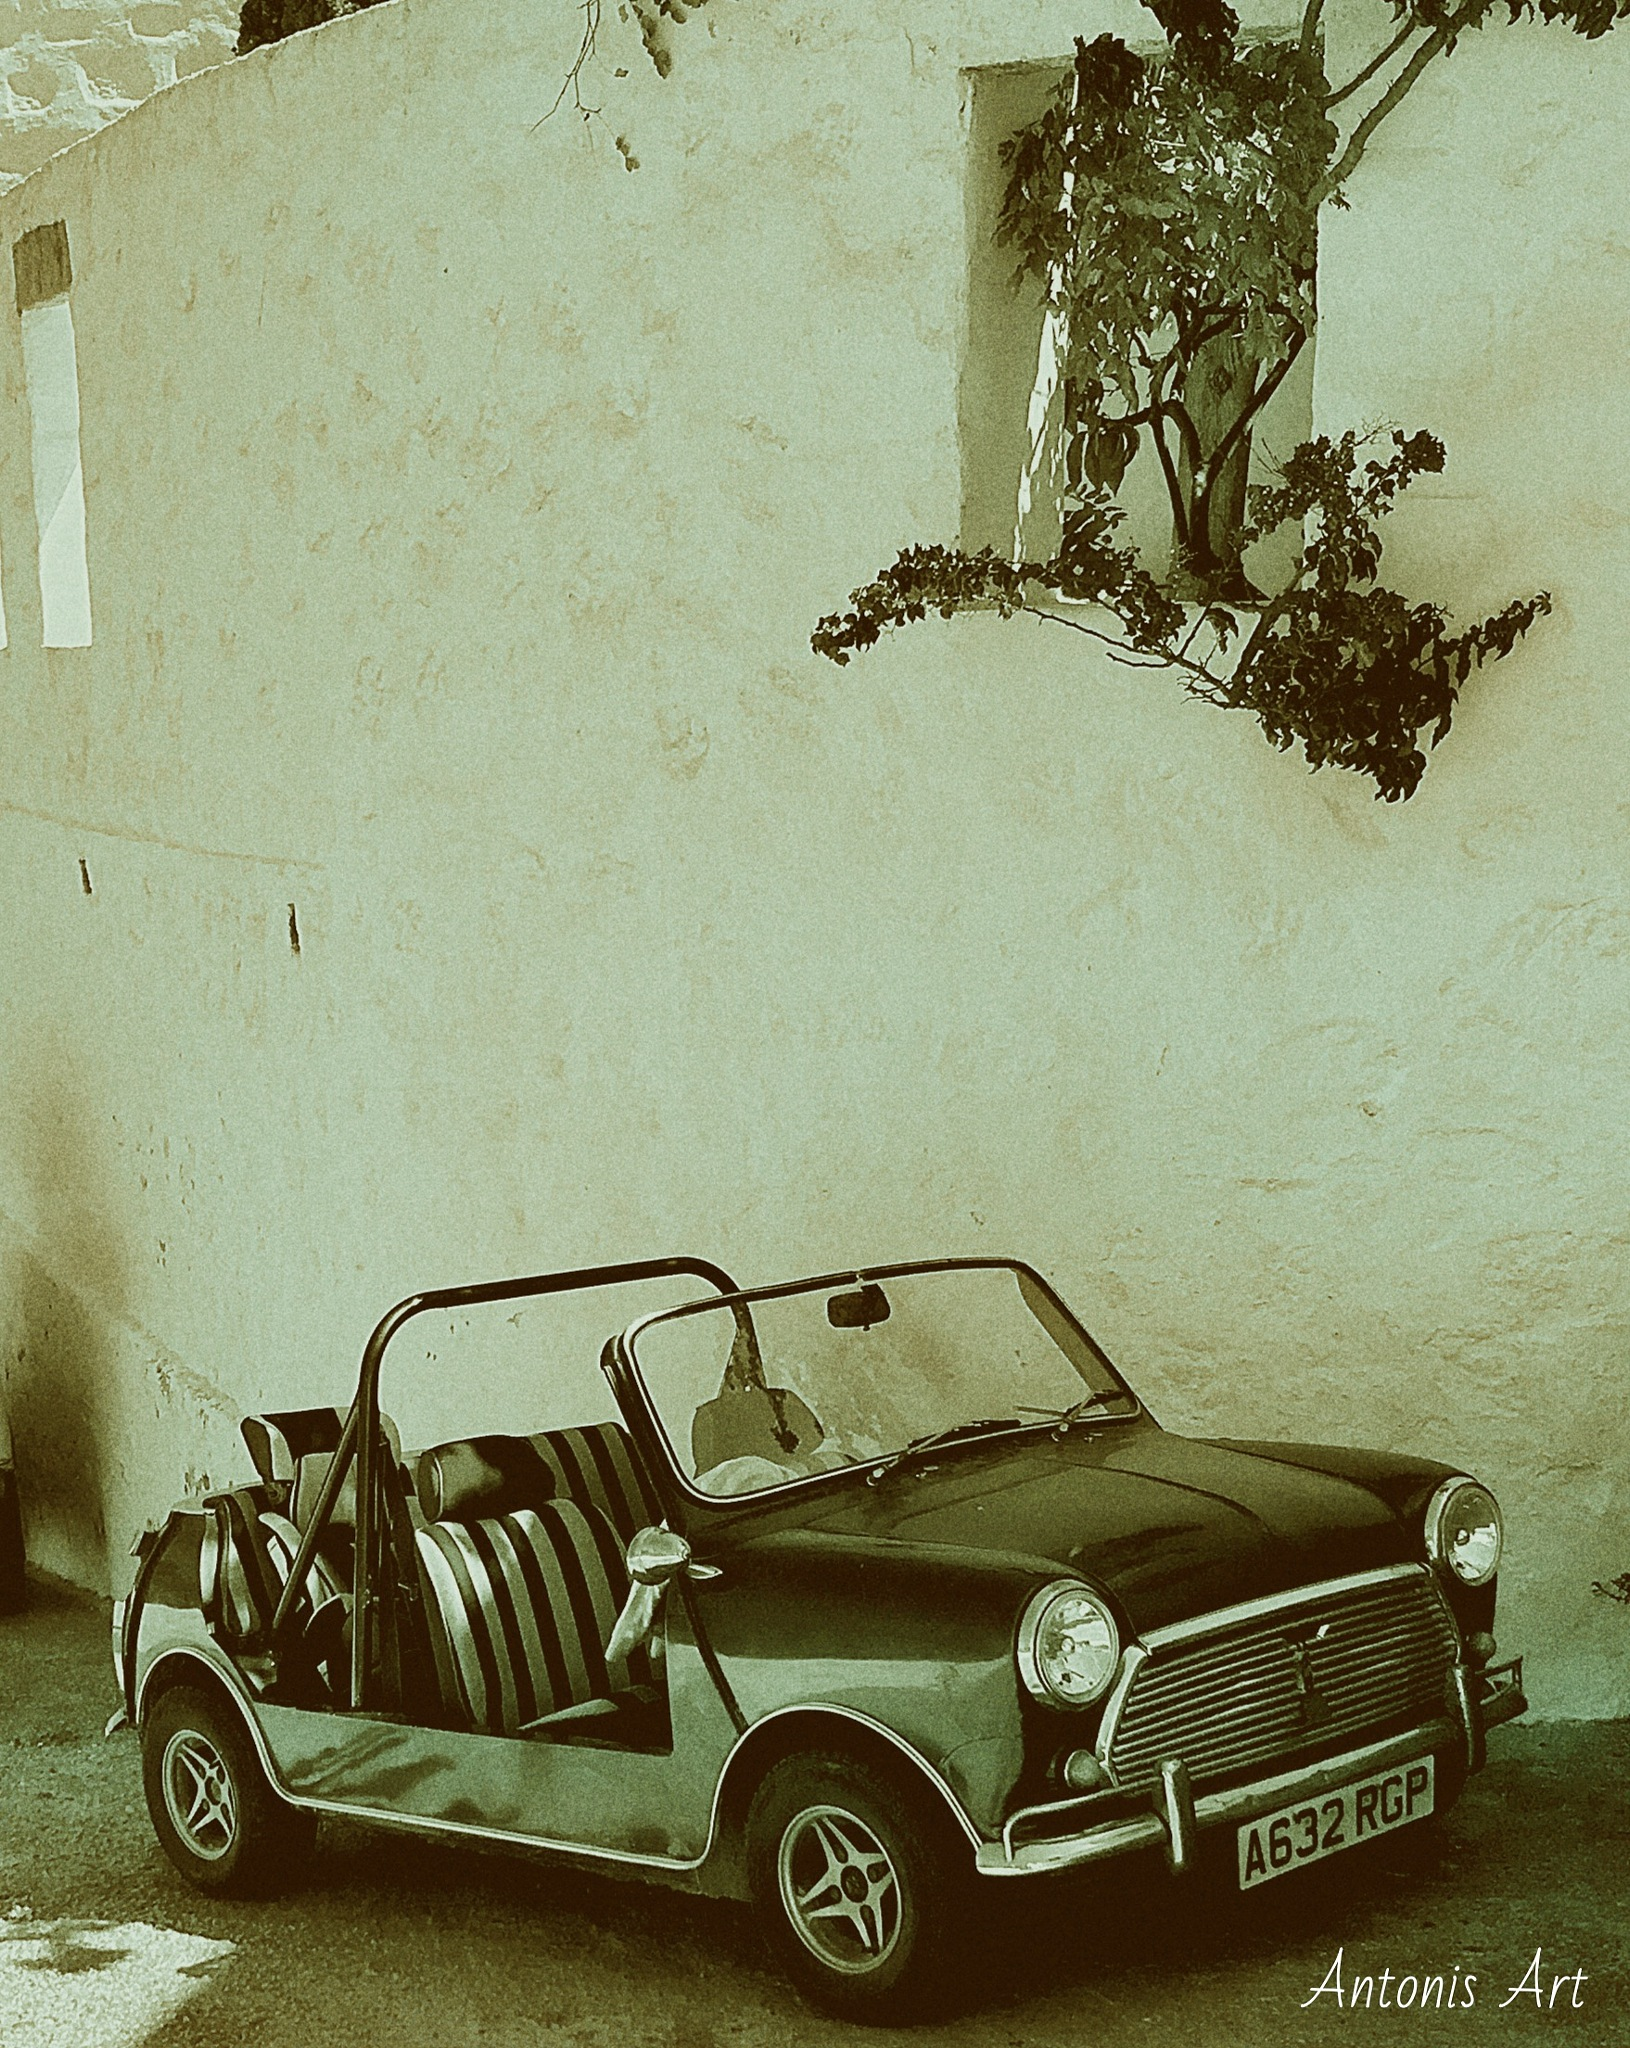 Patmos car with essence from another era by Antonis Skempes